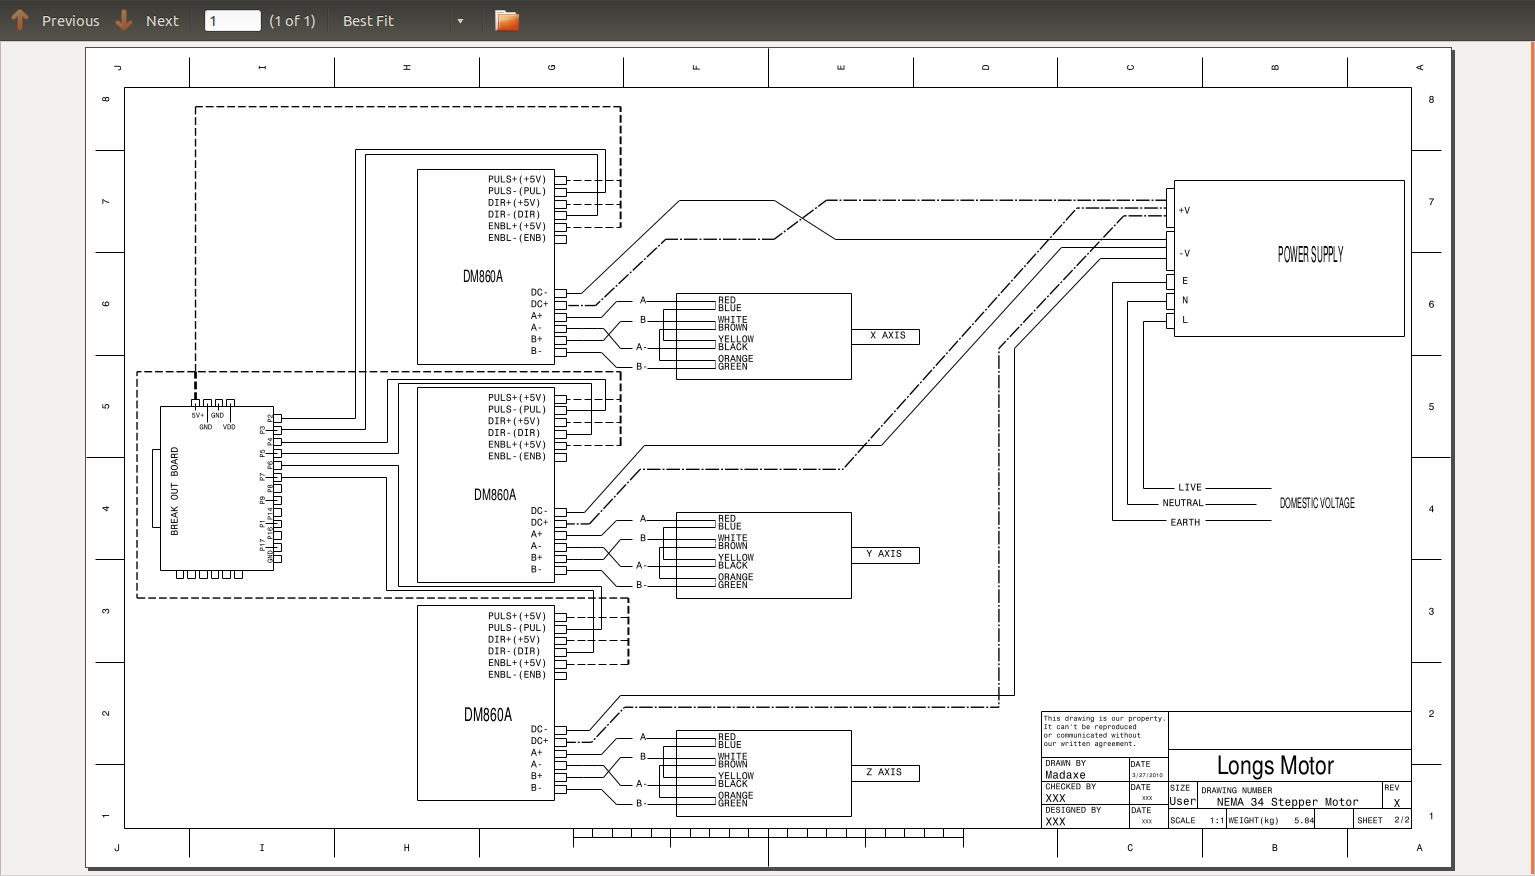 motor wiring cnc wiring diagram cnc relay wiring diagram \u2022 wiring diagrams j Gecko 540 CNC Driver at creativeand.co